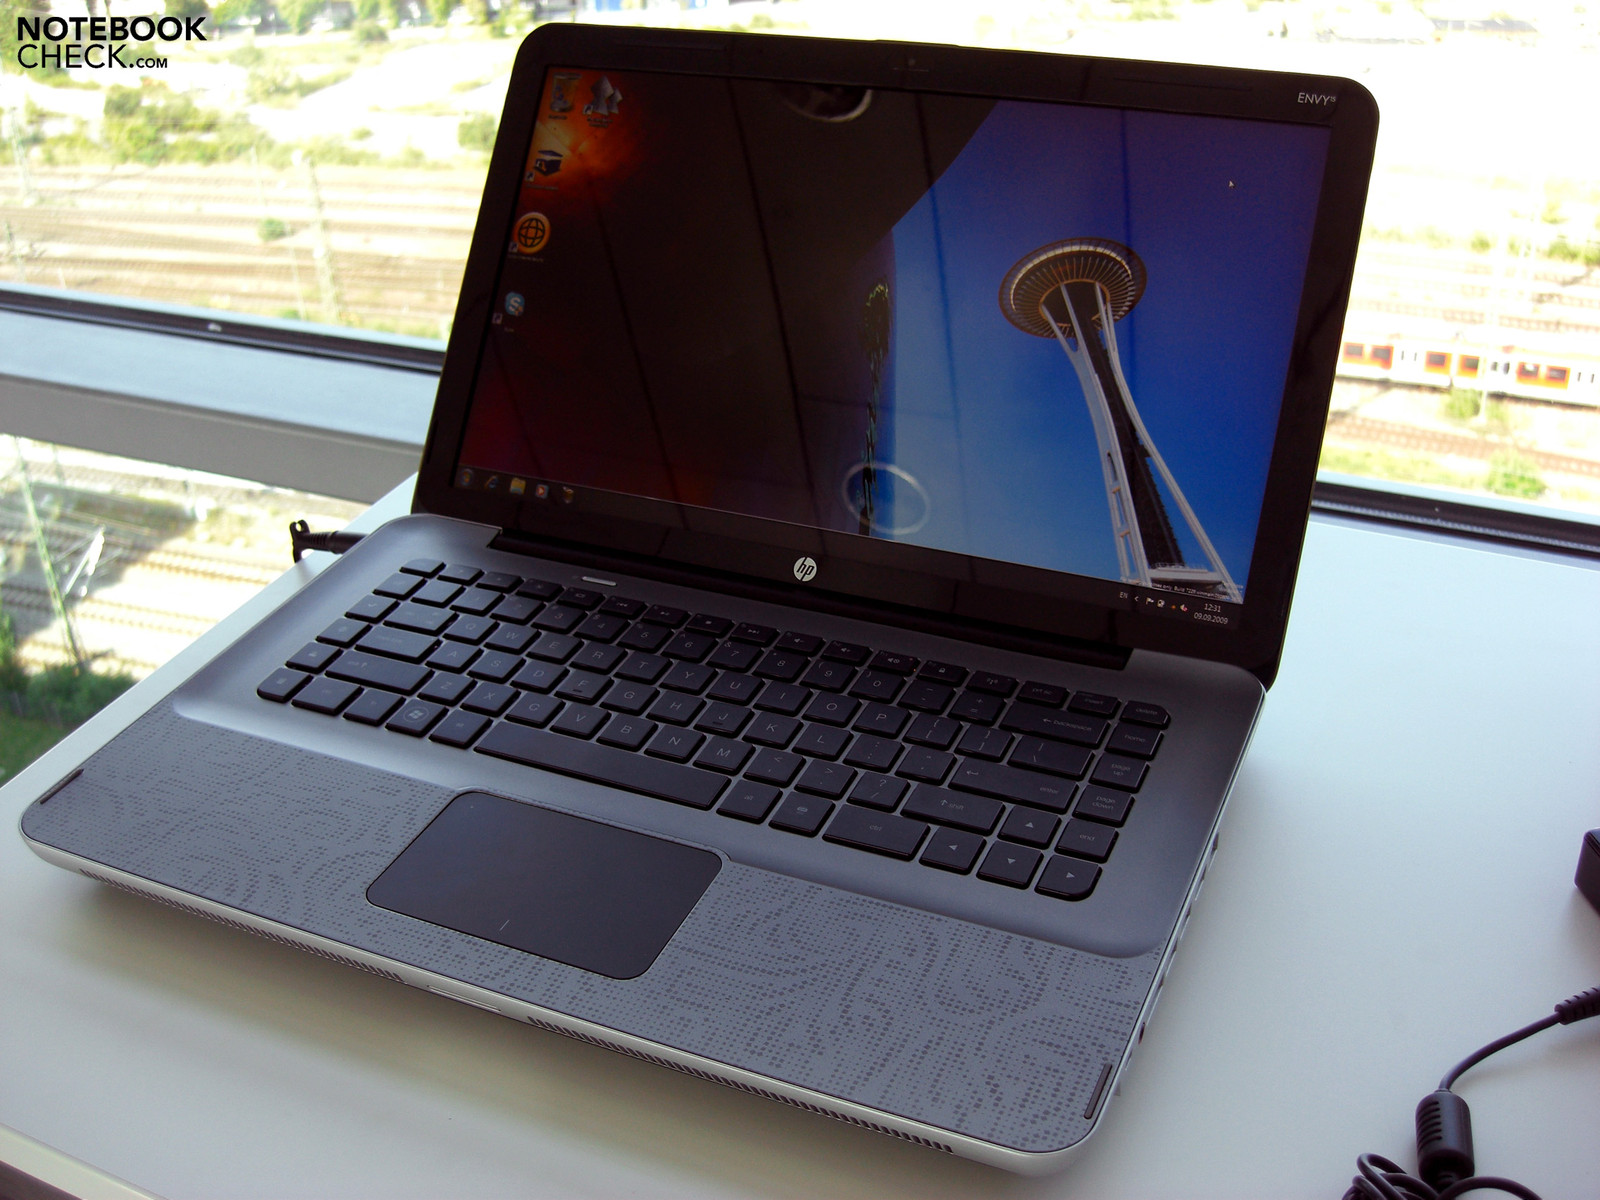 Hands On: HP Envy 13 / Envy 15 in Review - NotebookCheck.net Reviews